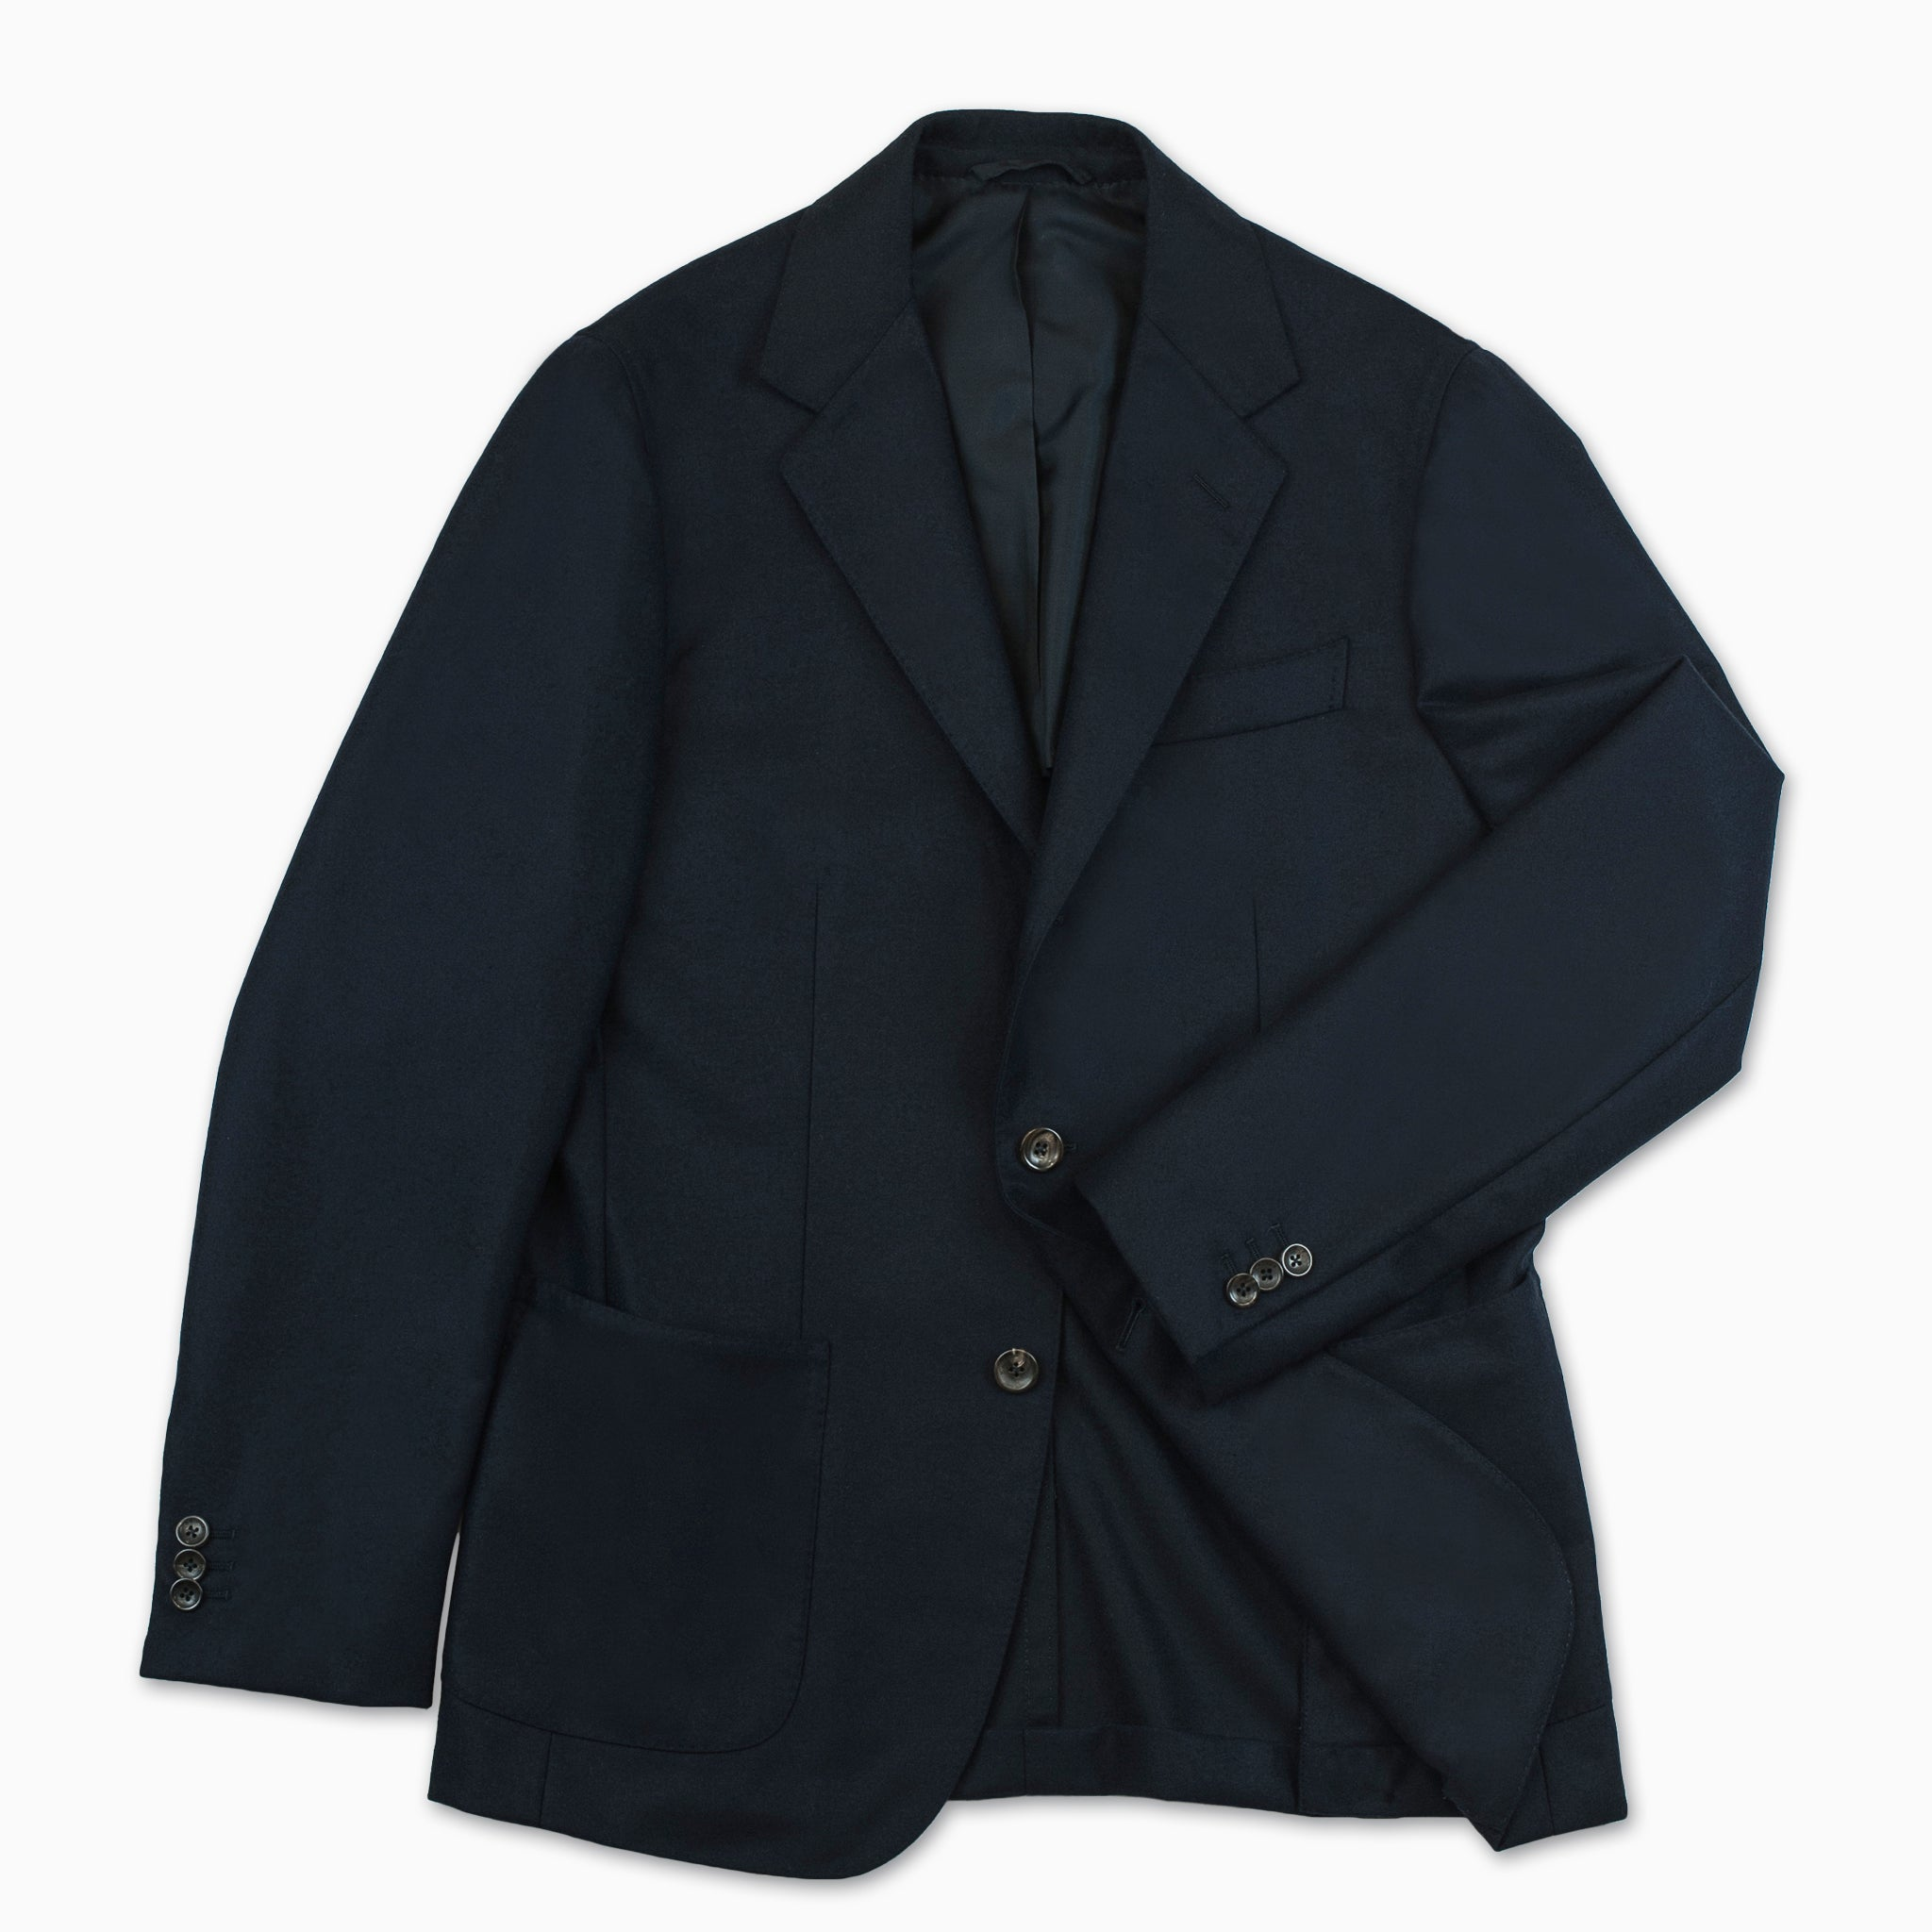 Blasi blazer solid flannel wool (Dark Blue)